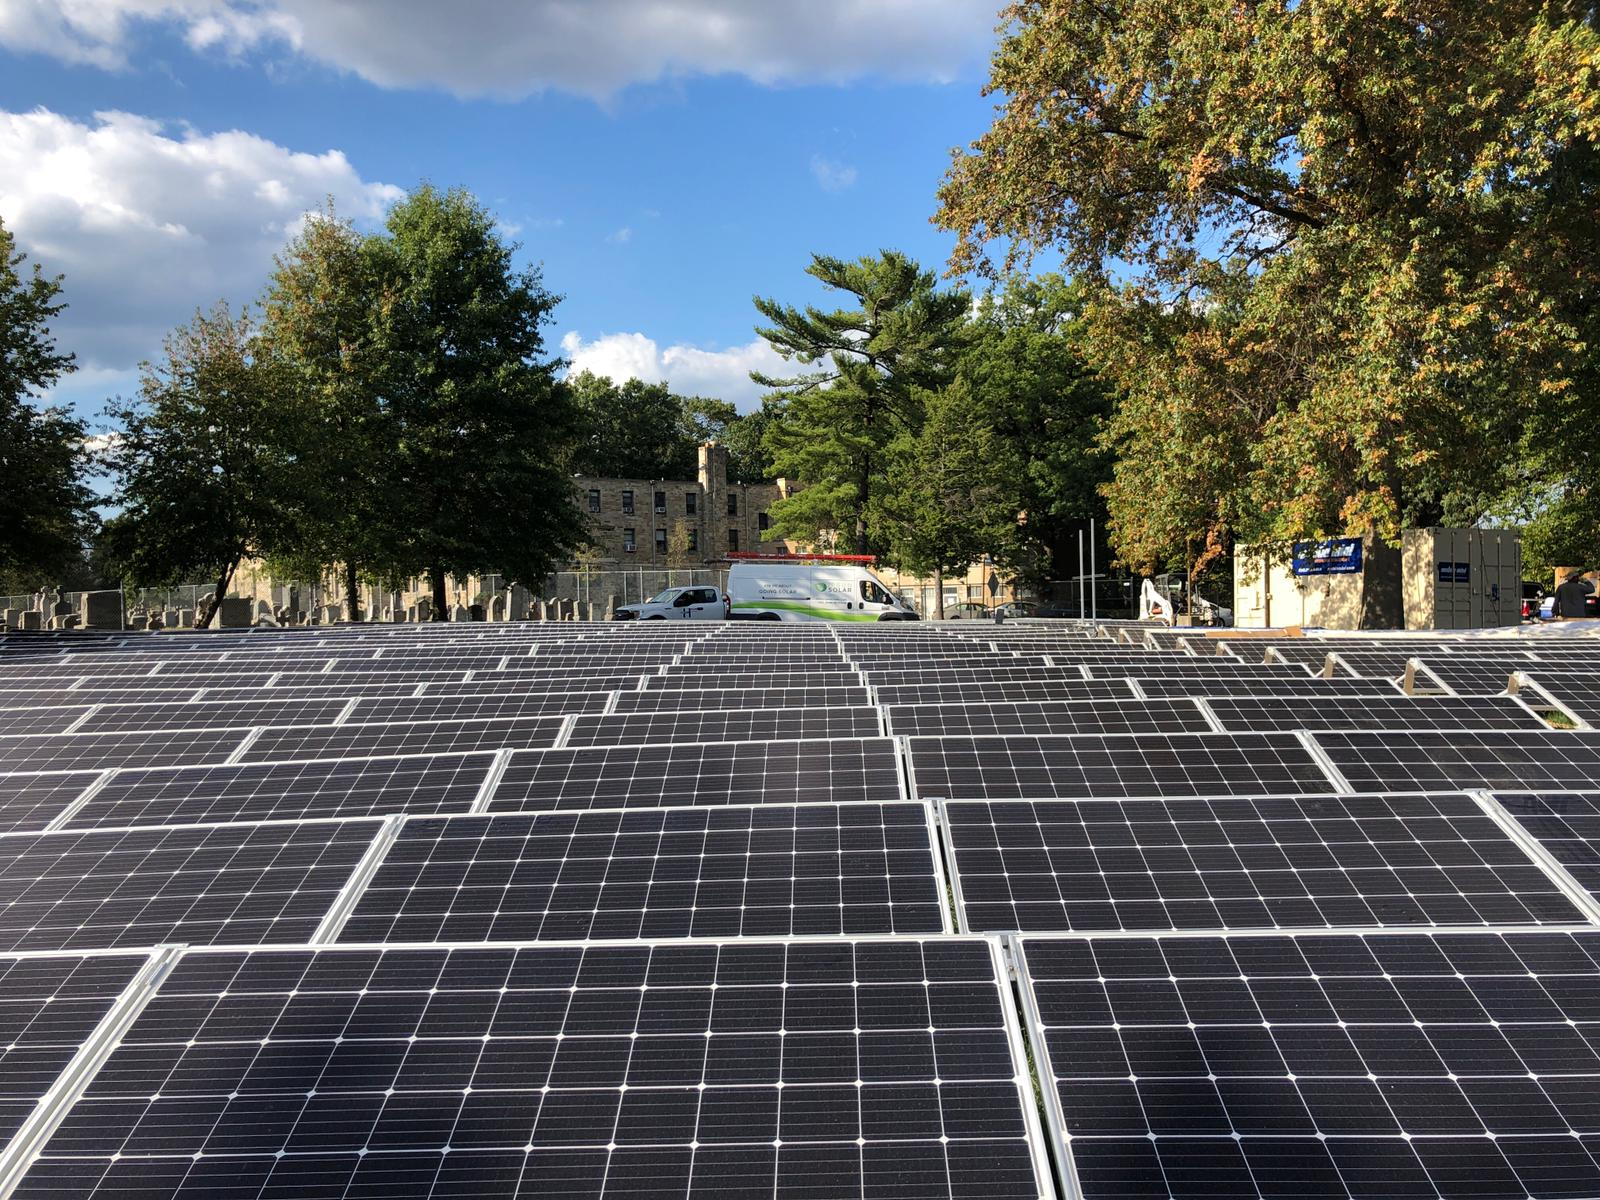 Community solar at Monastery of Our Lady of Mt. Carmel